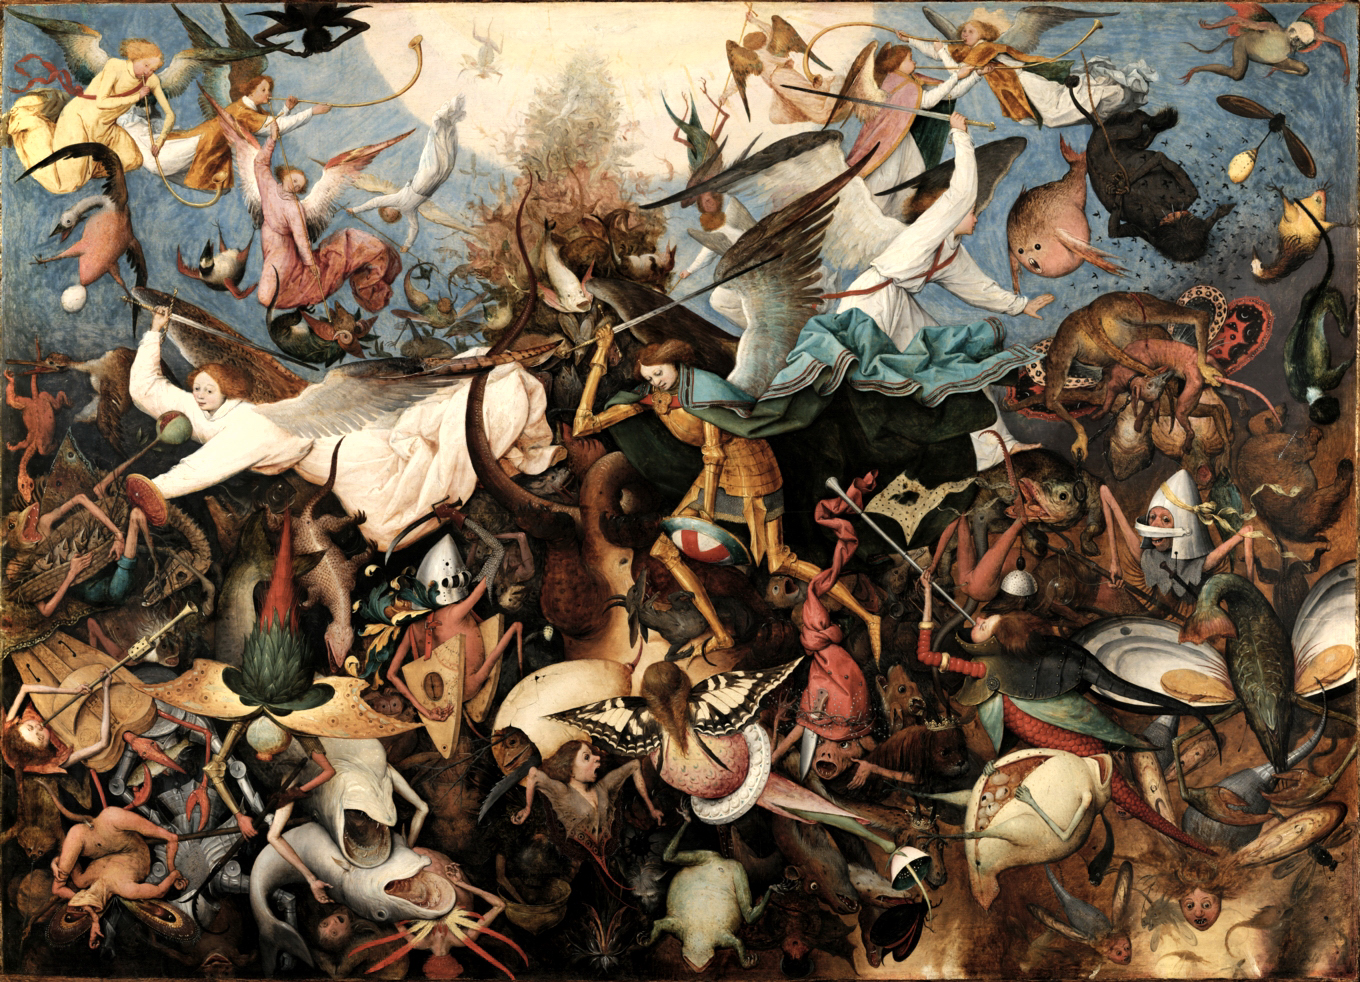 https://ma91c1an.files.wordpress.com/2015/06/pieter_bruegel_the_elder_-_the_fall_of_the_rebel_angels_-_rmfab_584_derivative_work.jpg